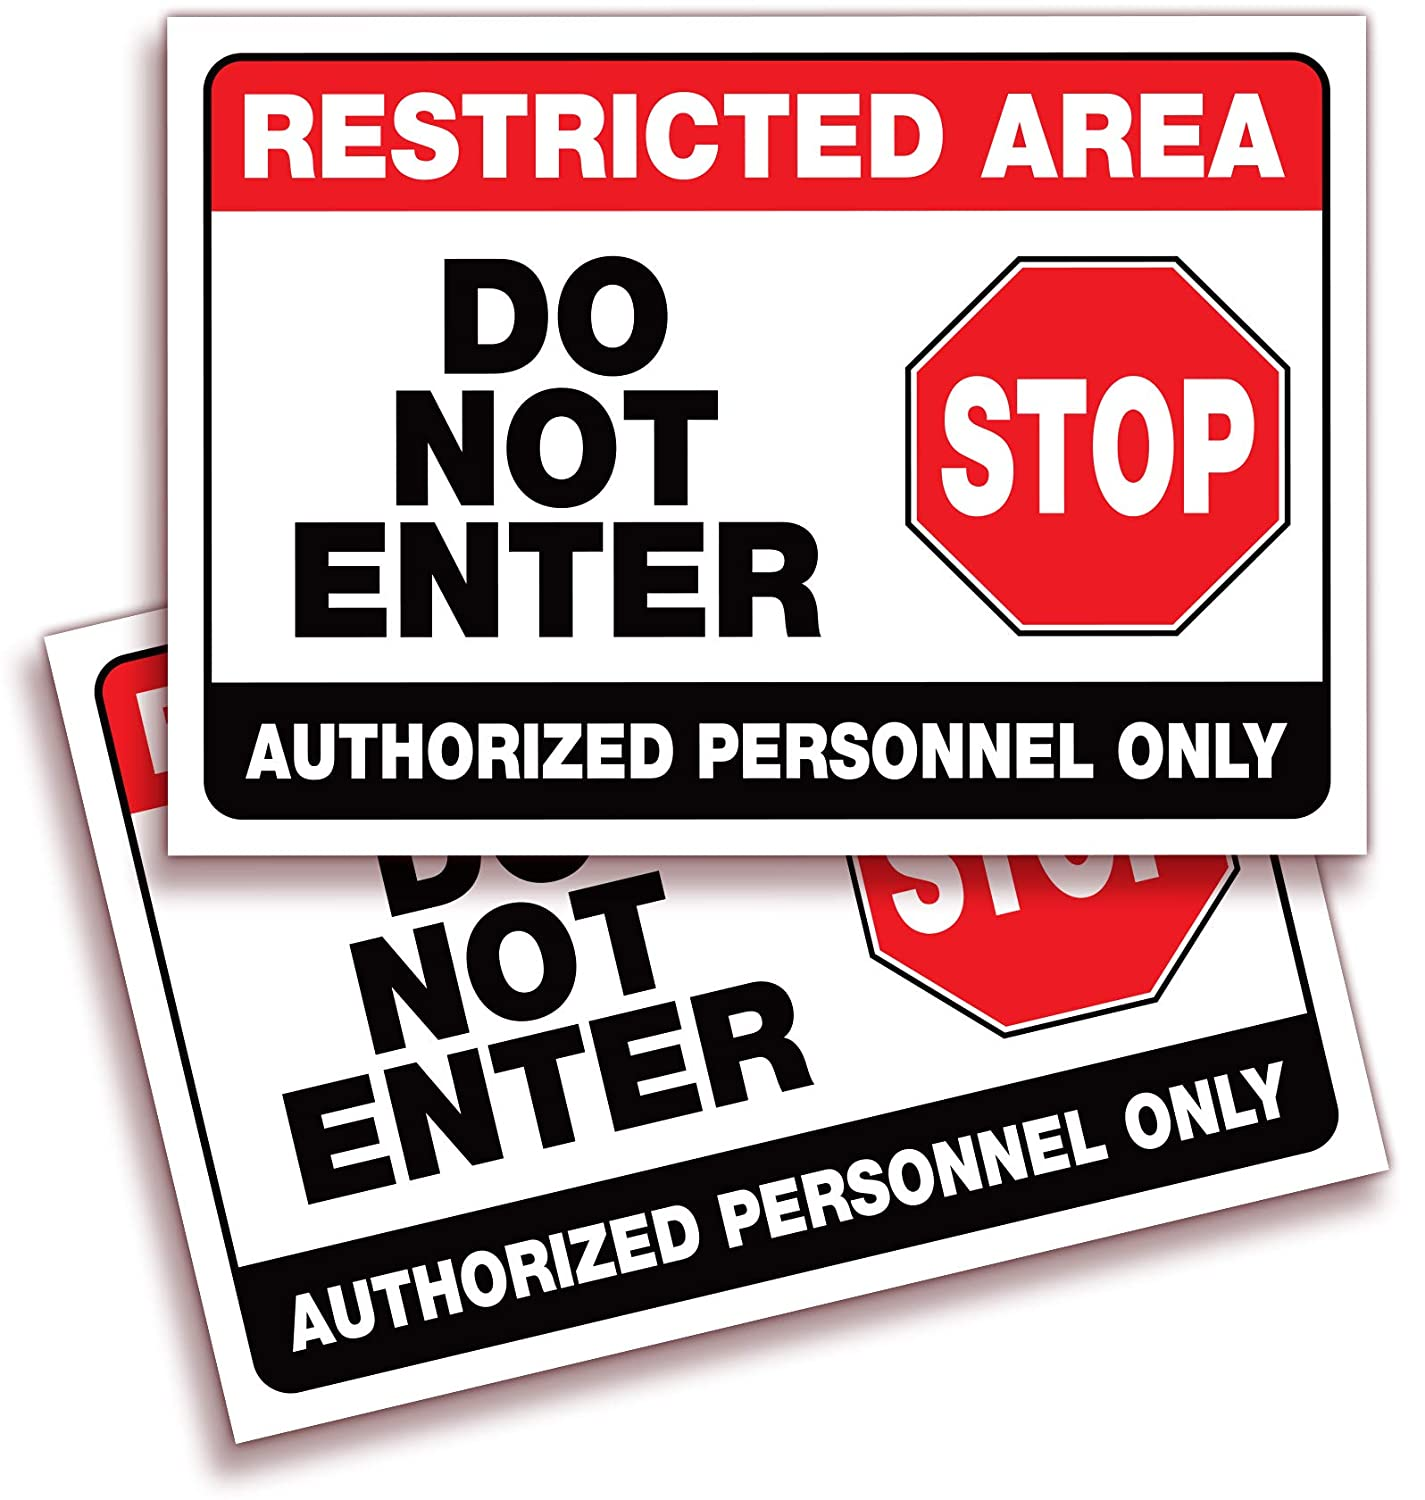 Restricted area do not enter authorized personnel only signs stickers 2 pack 10x7 inch premium self adhesive vinyl laminated for uv weather